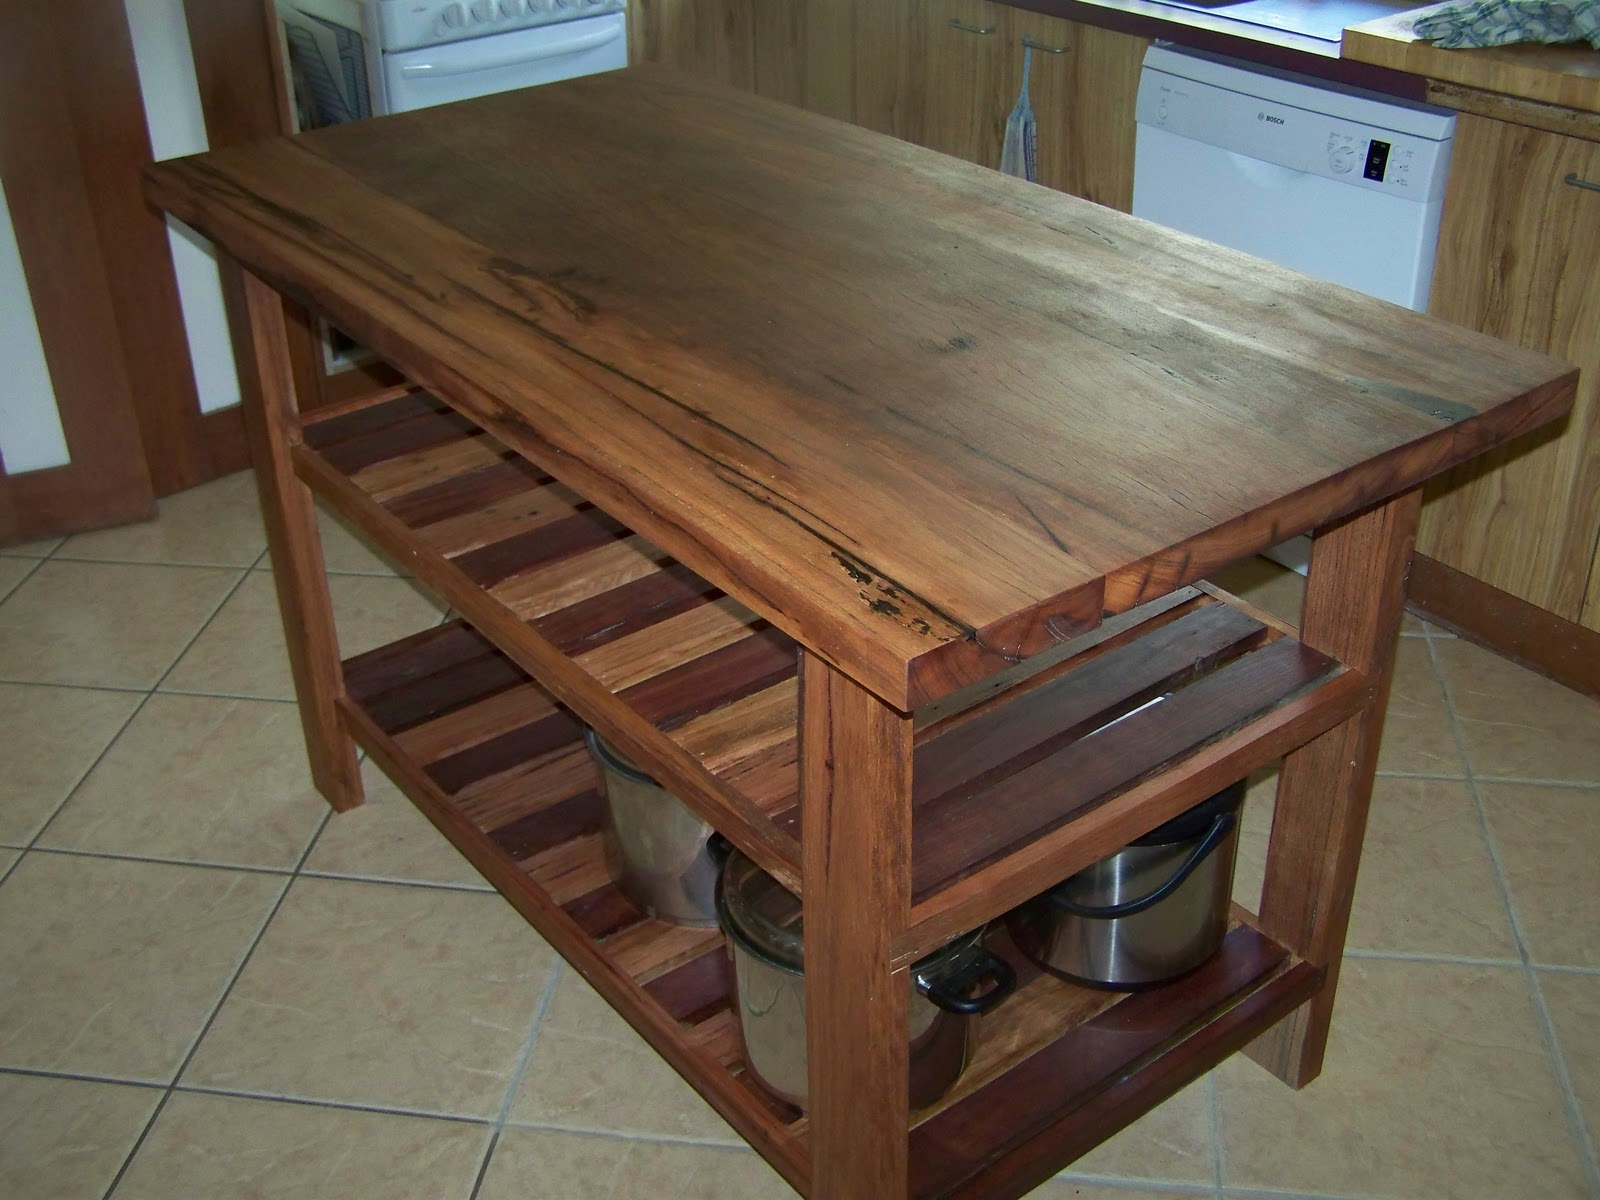 secret hippie new kitchen island bench ForKitchen Island Bench